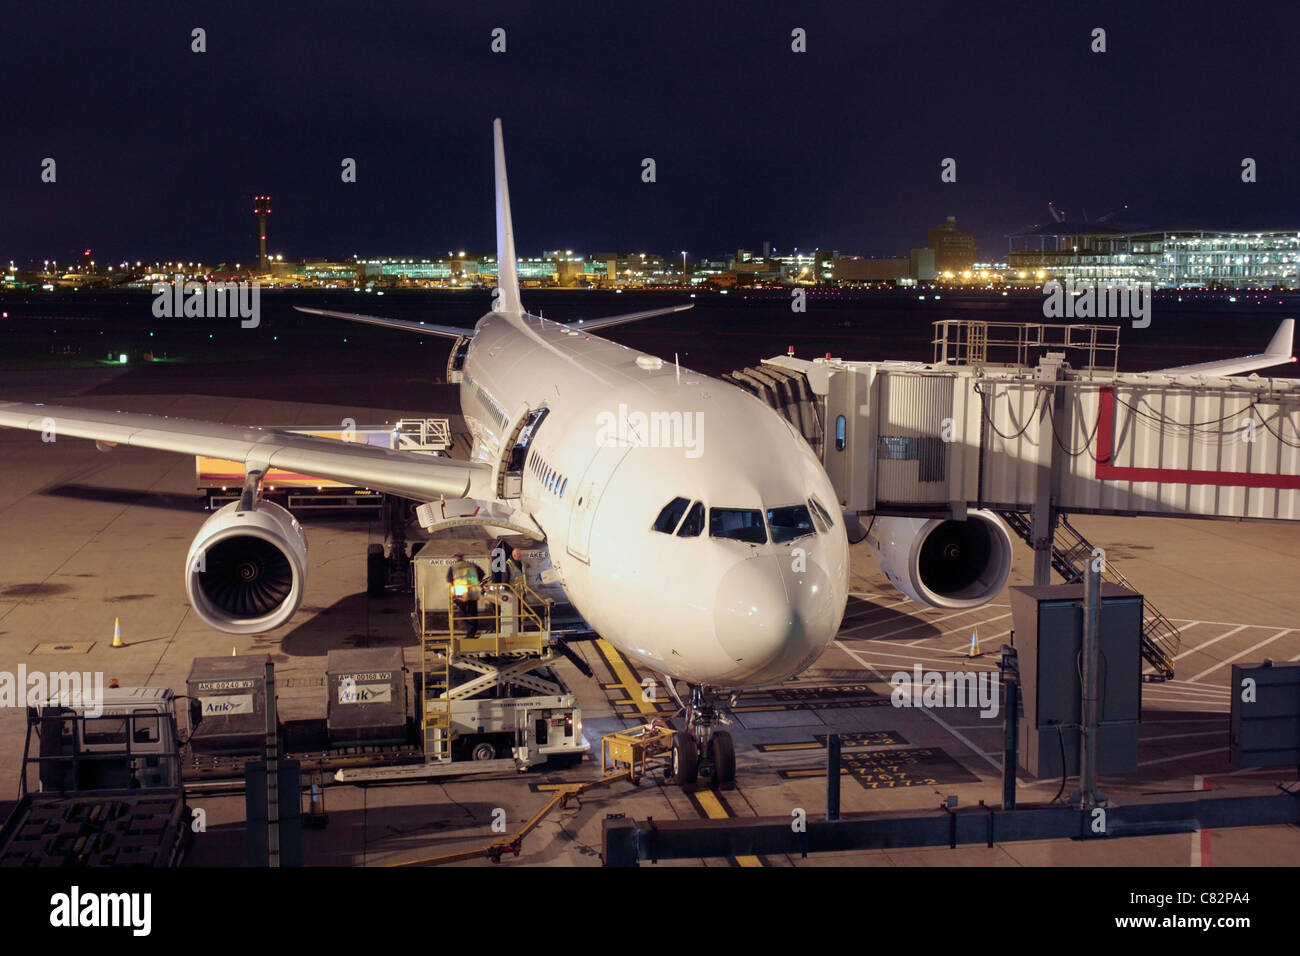 Unmarked Airbus A330-200 airliner at its gate at Heathrow Airport Terminal 4, with air cargo being loaded on board. - Stock Image